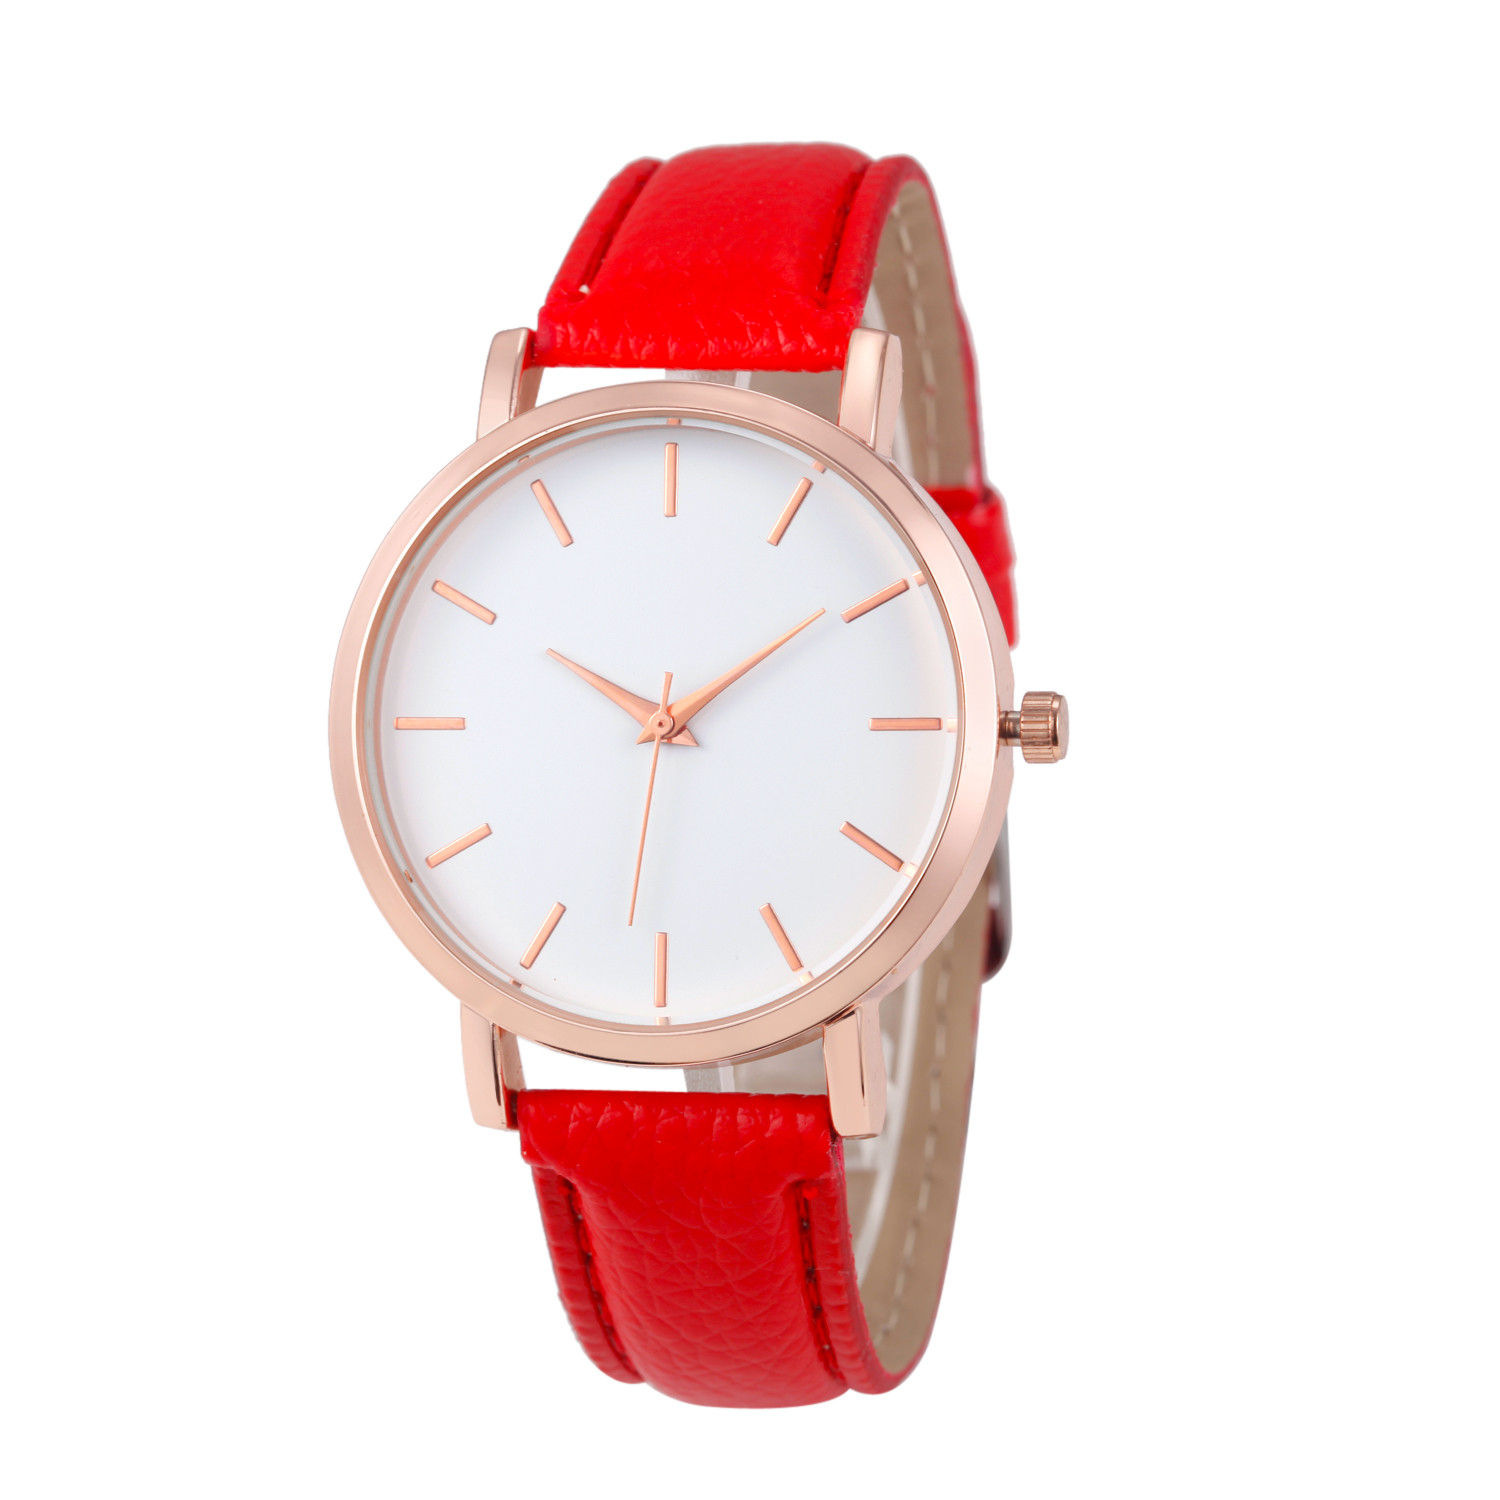 Fashion Lady Watch with Red Leather Strap